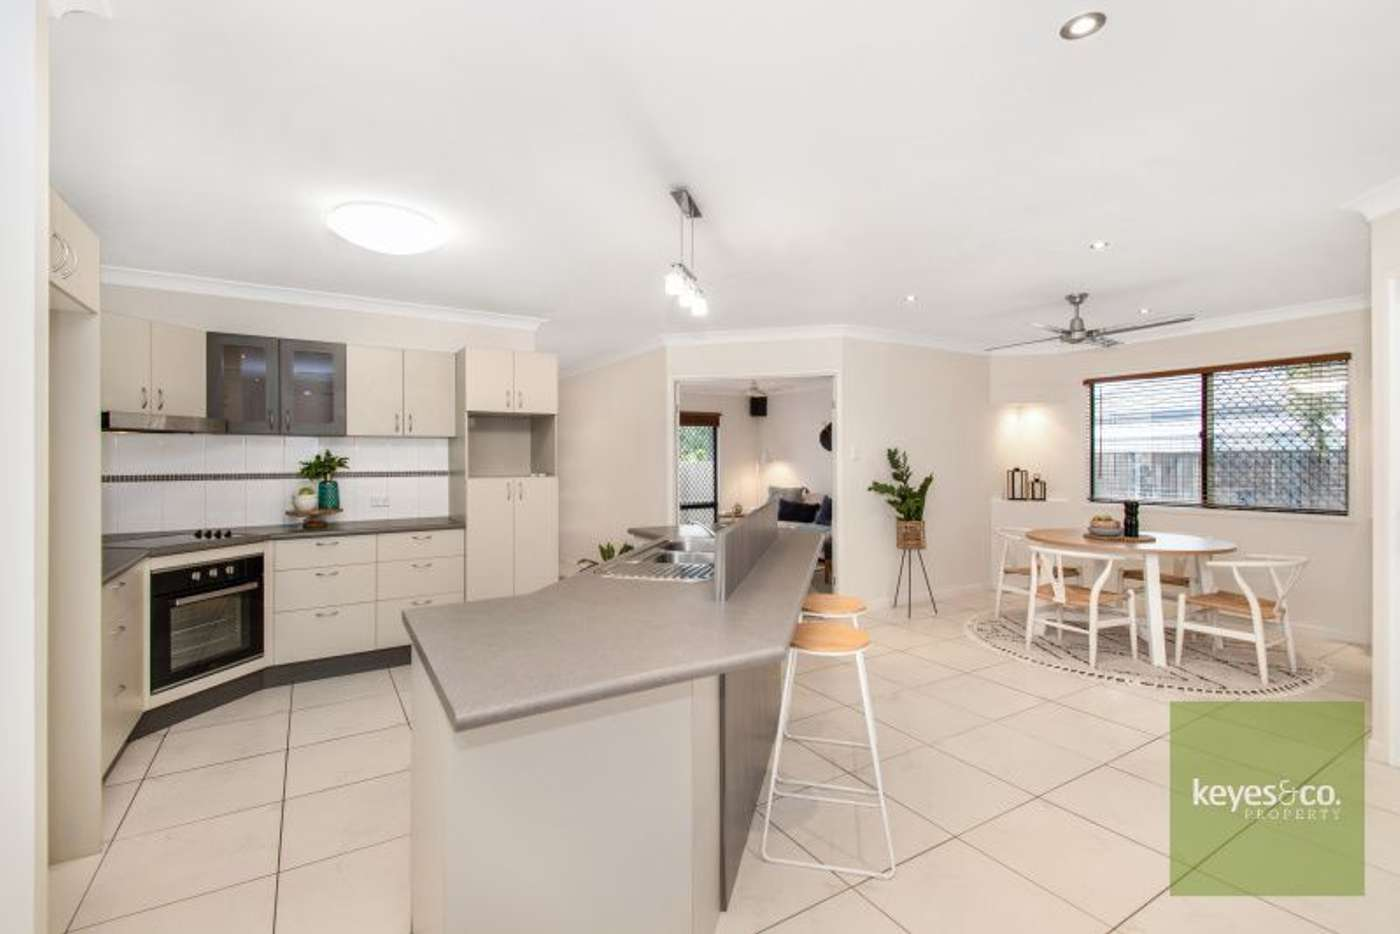 Fifth view of Homely house listing, 7 Anchorage Circuit, Bushland Beach QLD 4818